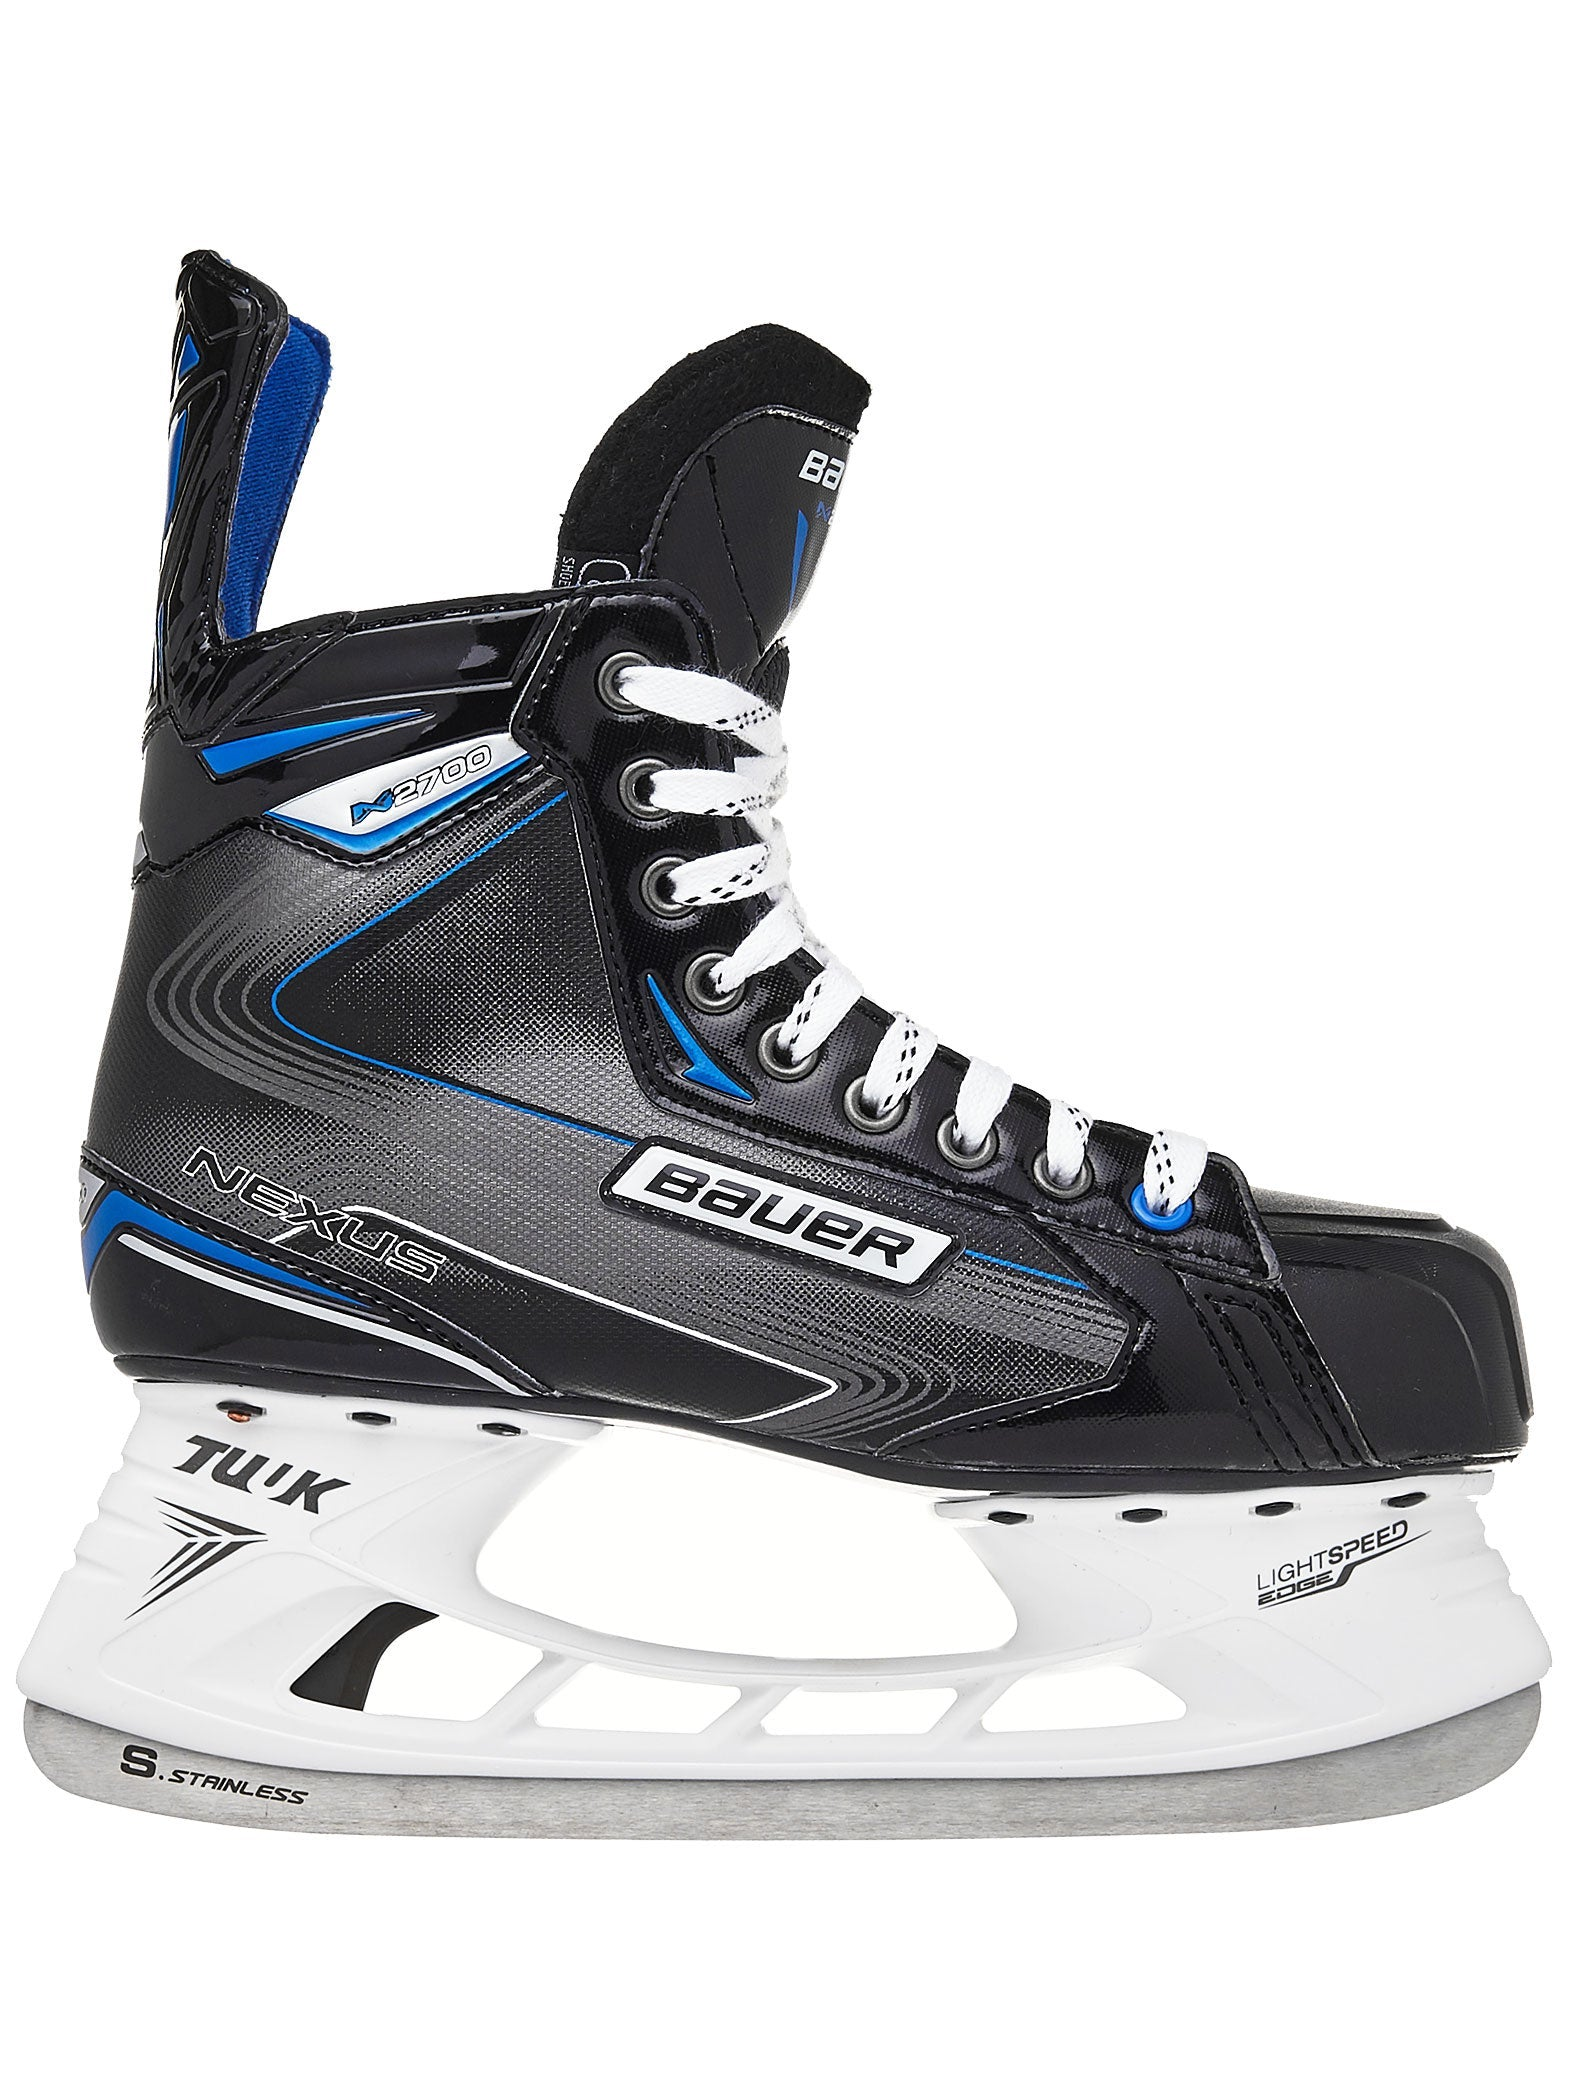 Patines hockey Bauer Nexus N2700 - Doberman's Skate Shop - Doberman's Skate Shop